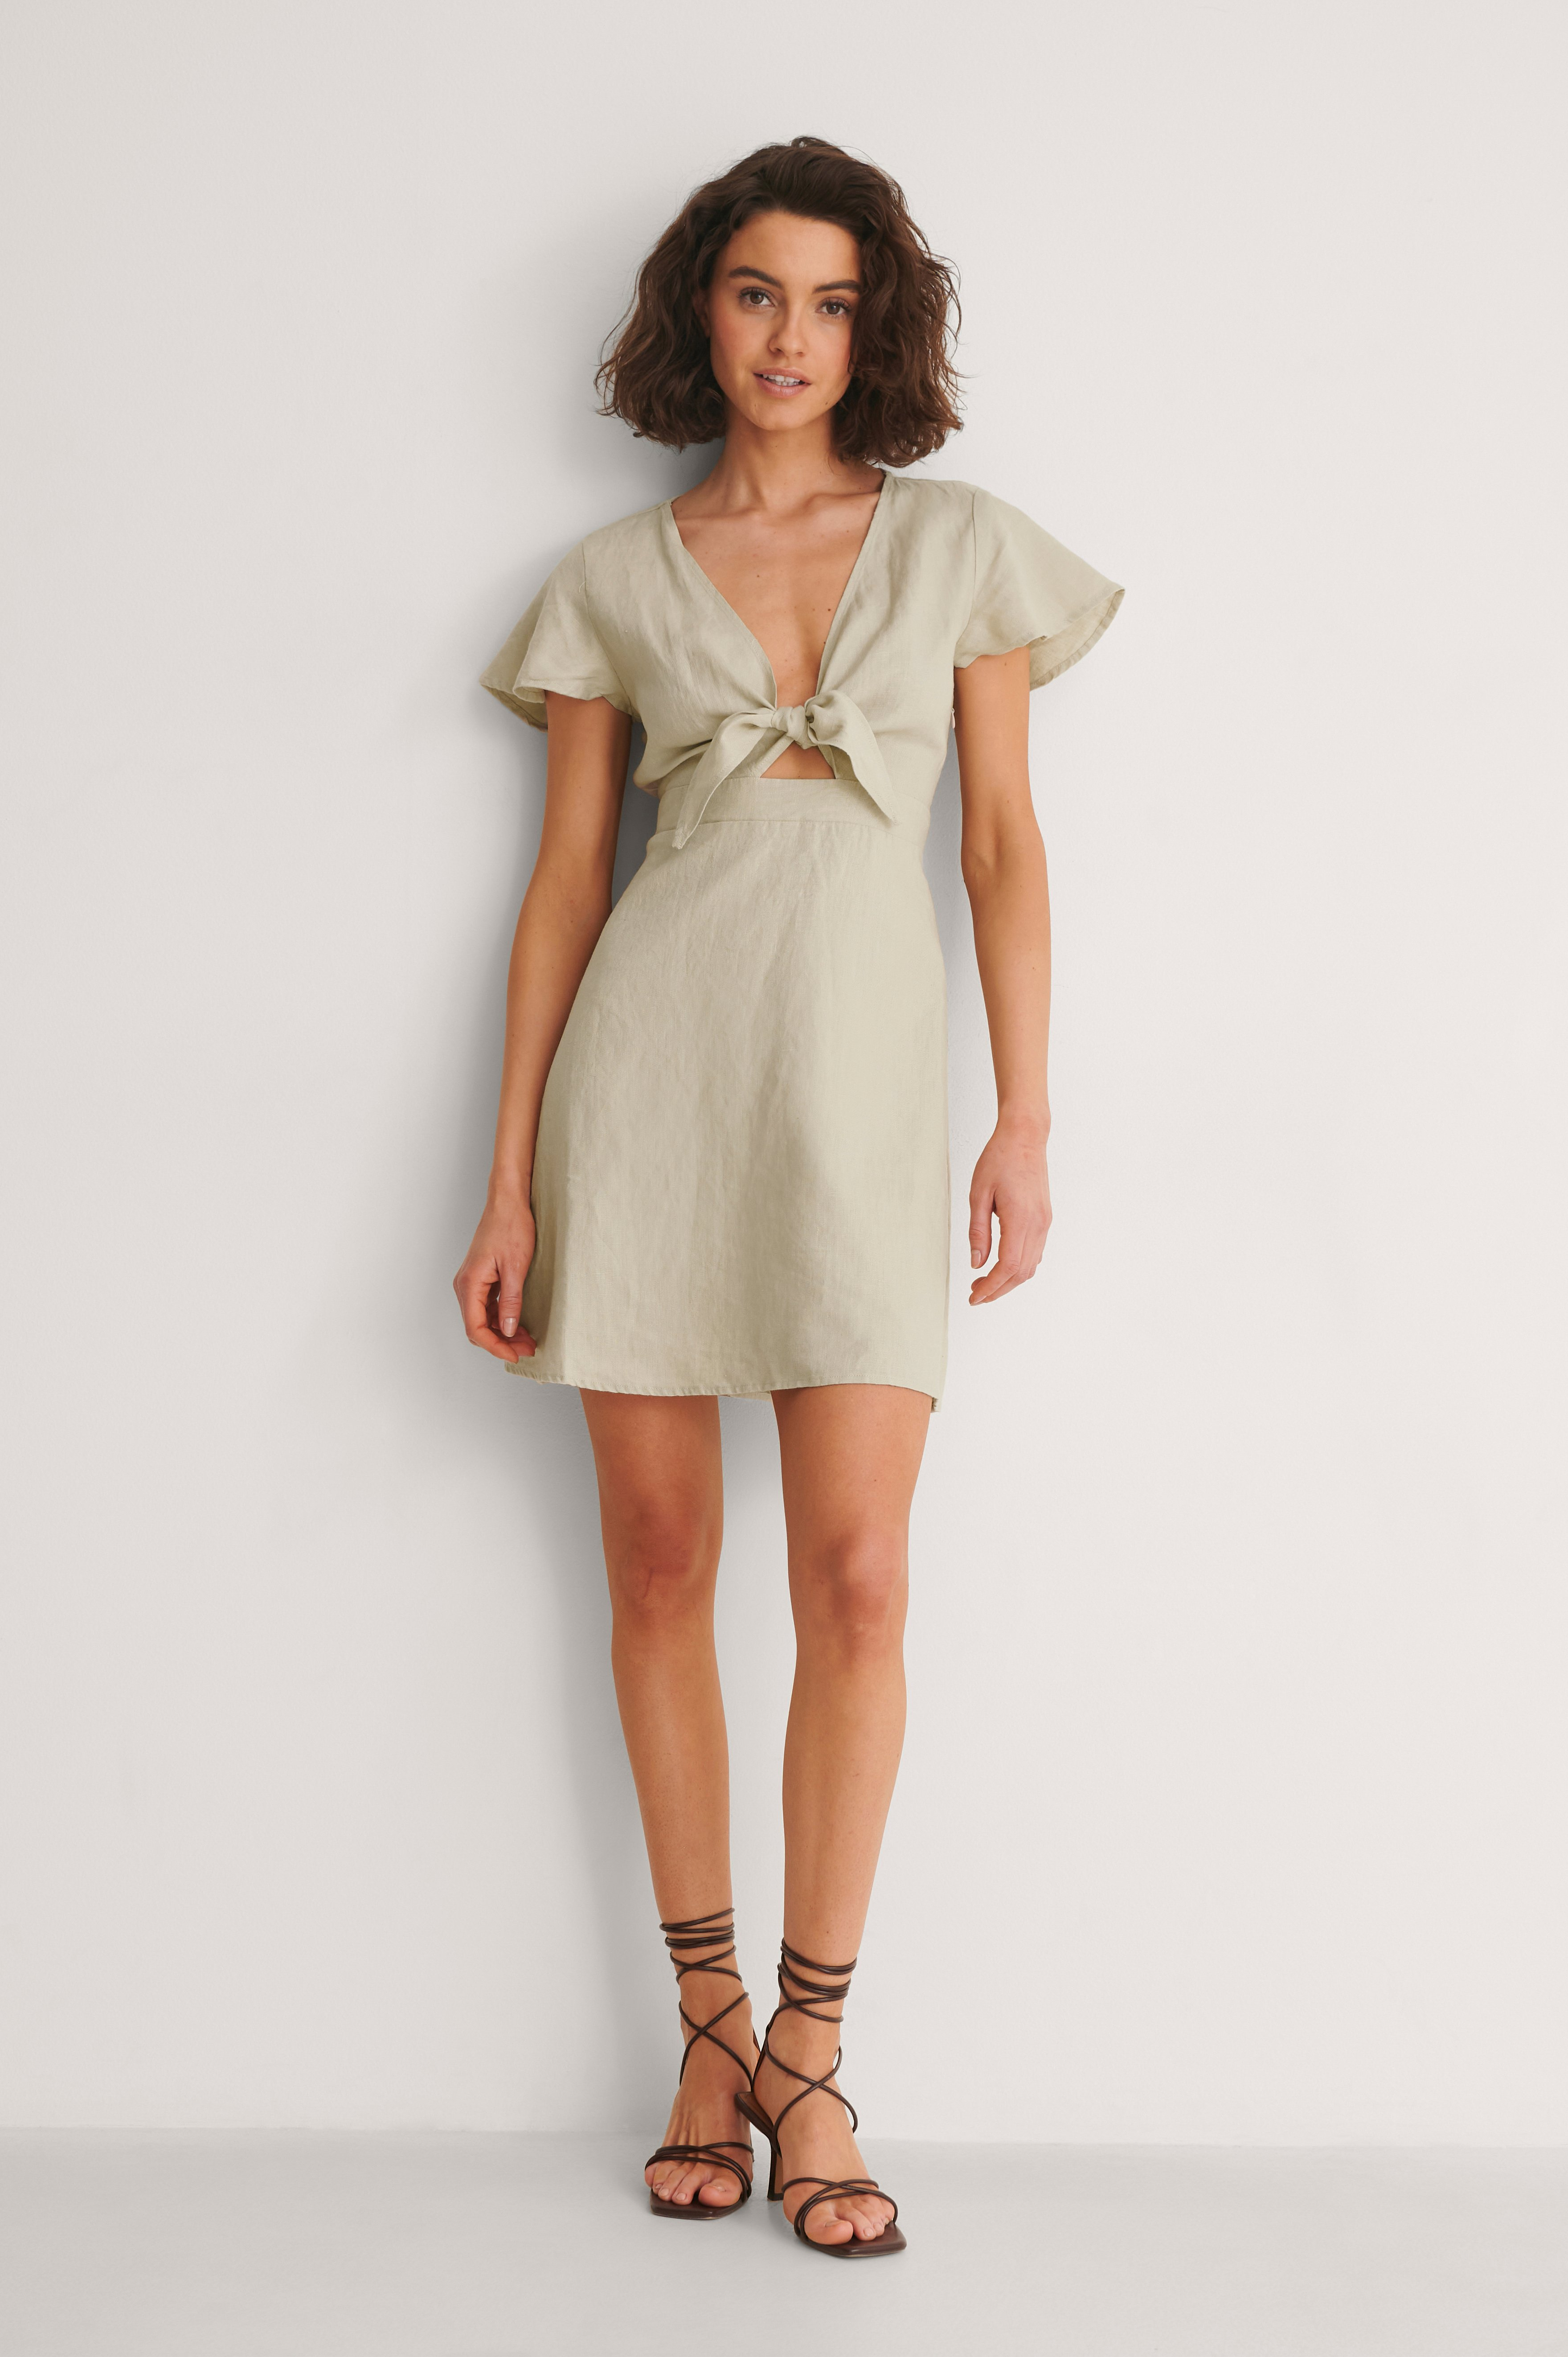 Tie Front Linen Dress Outfit.